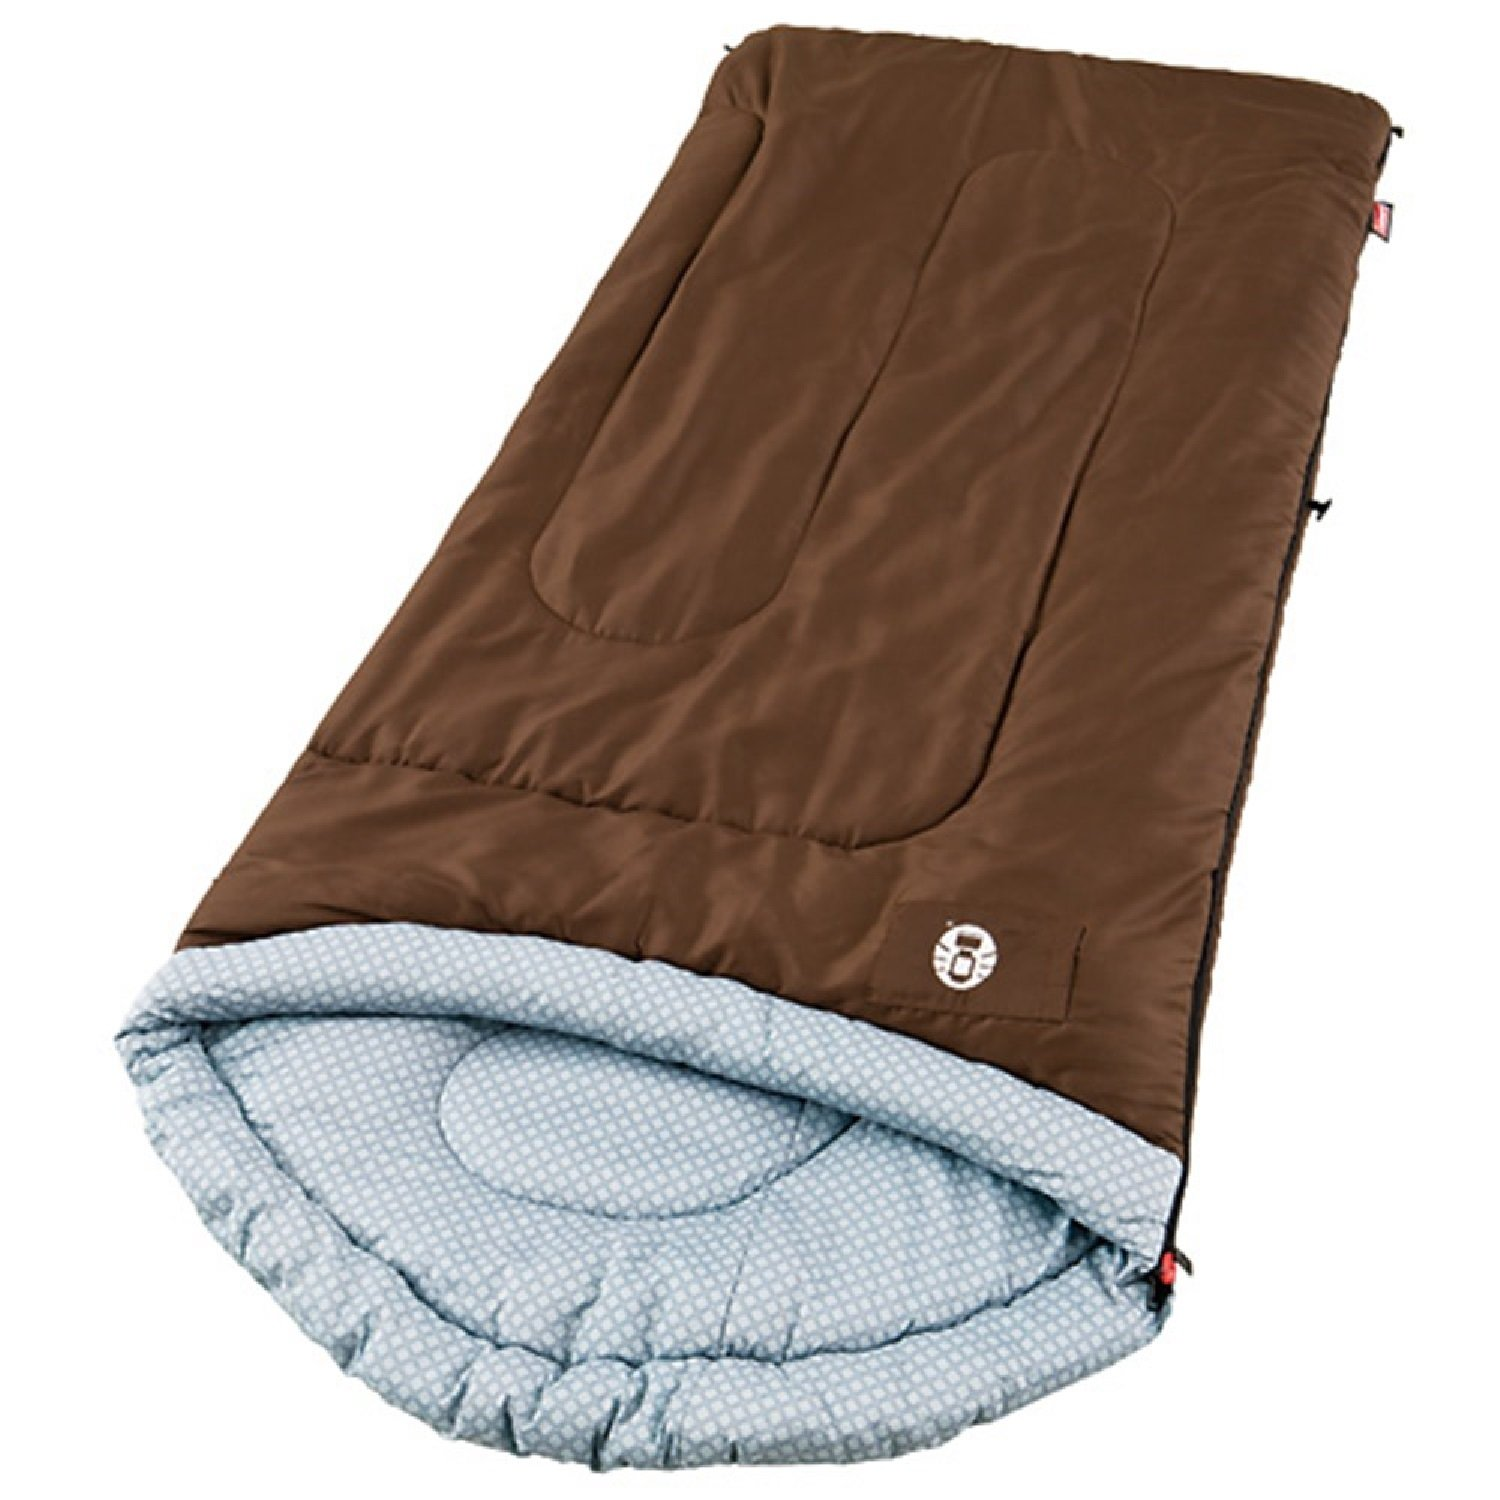 An image of Coleman Willow Creek 2000004446 40 Degree Polyester Sleeping Bag